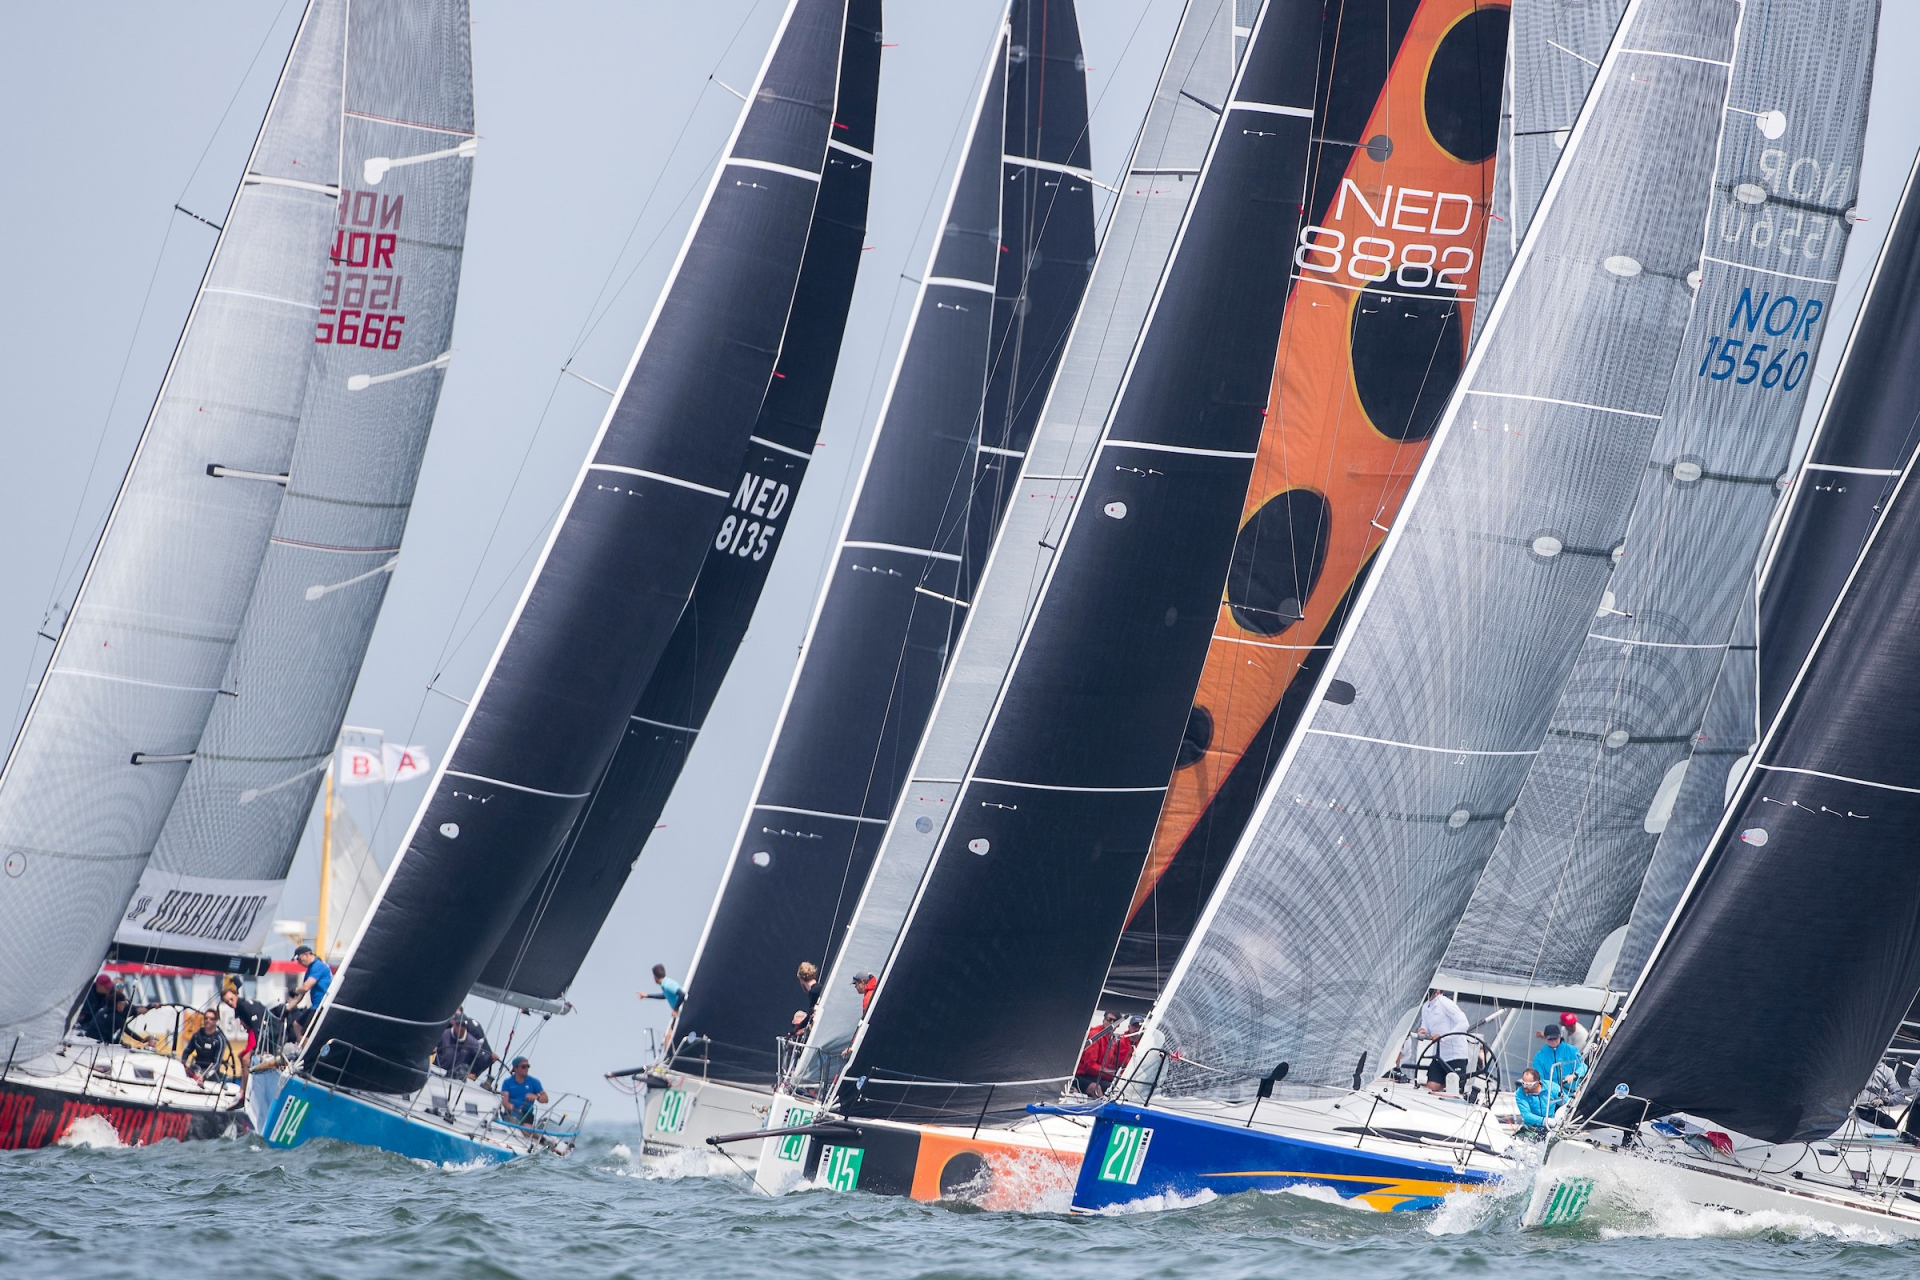 2022 ORC/IRC World Championship to be in Porto Cervo - NEWS - Yacht Club Costa Smeralda